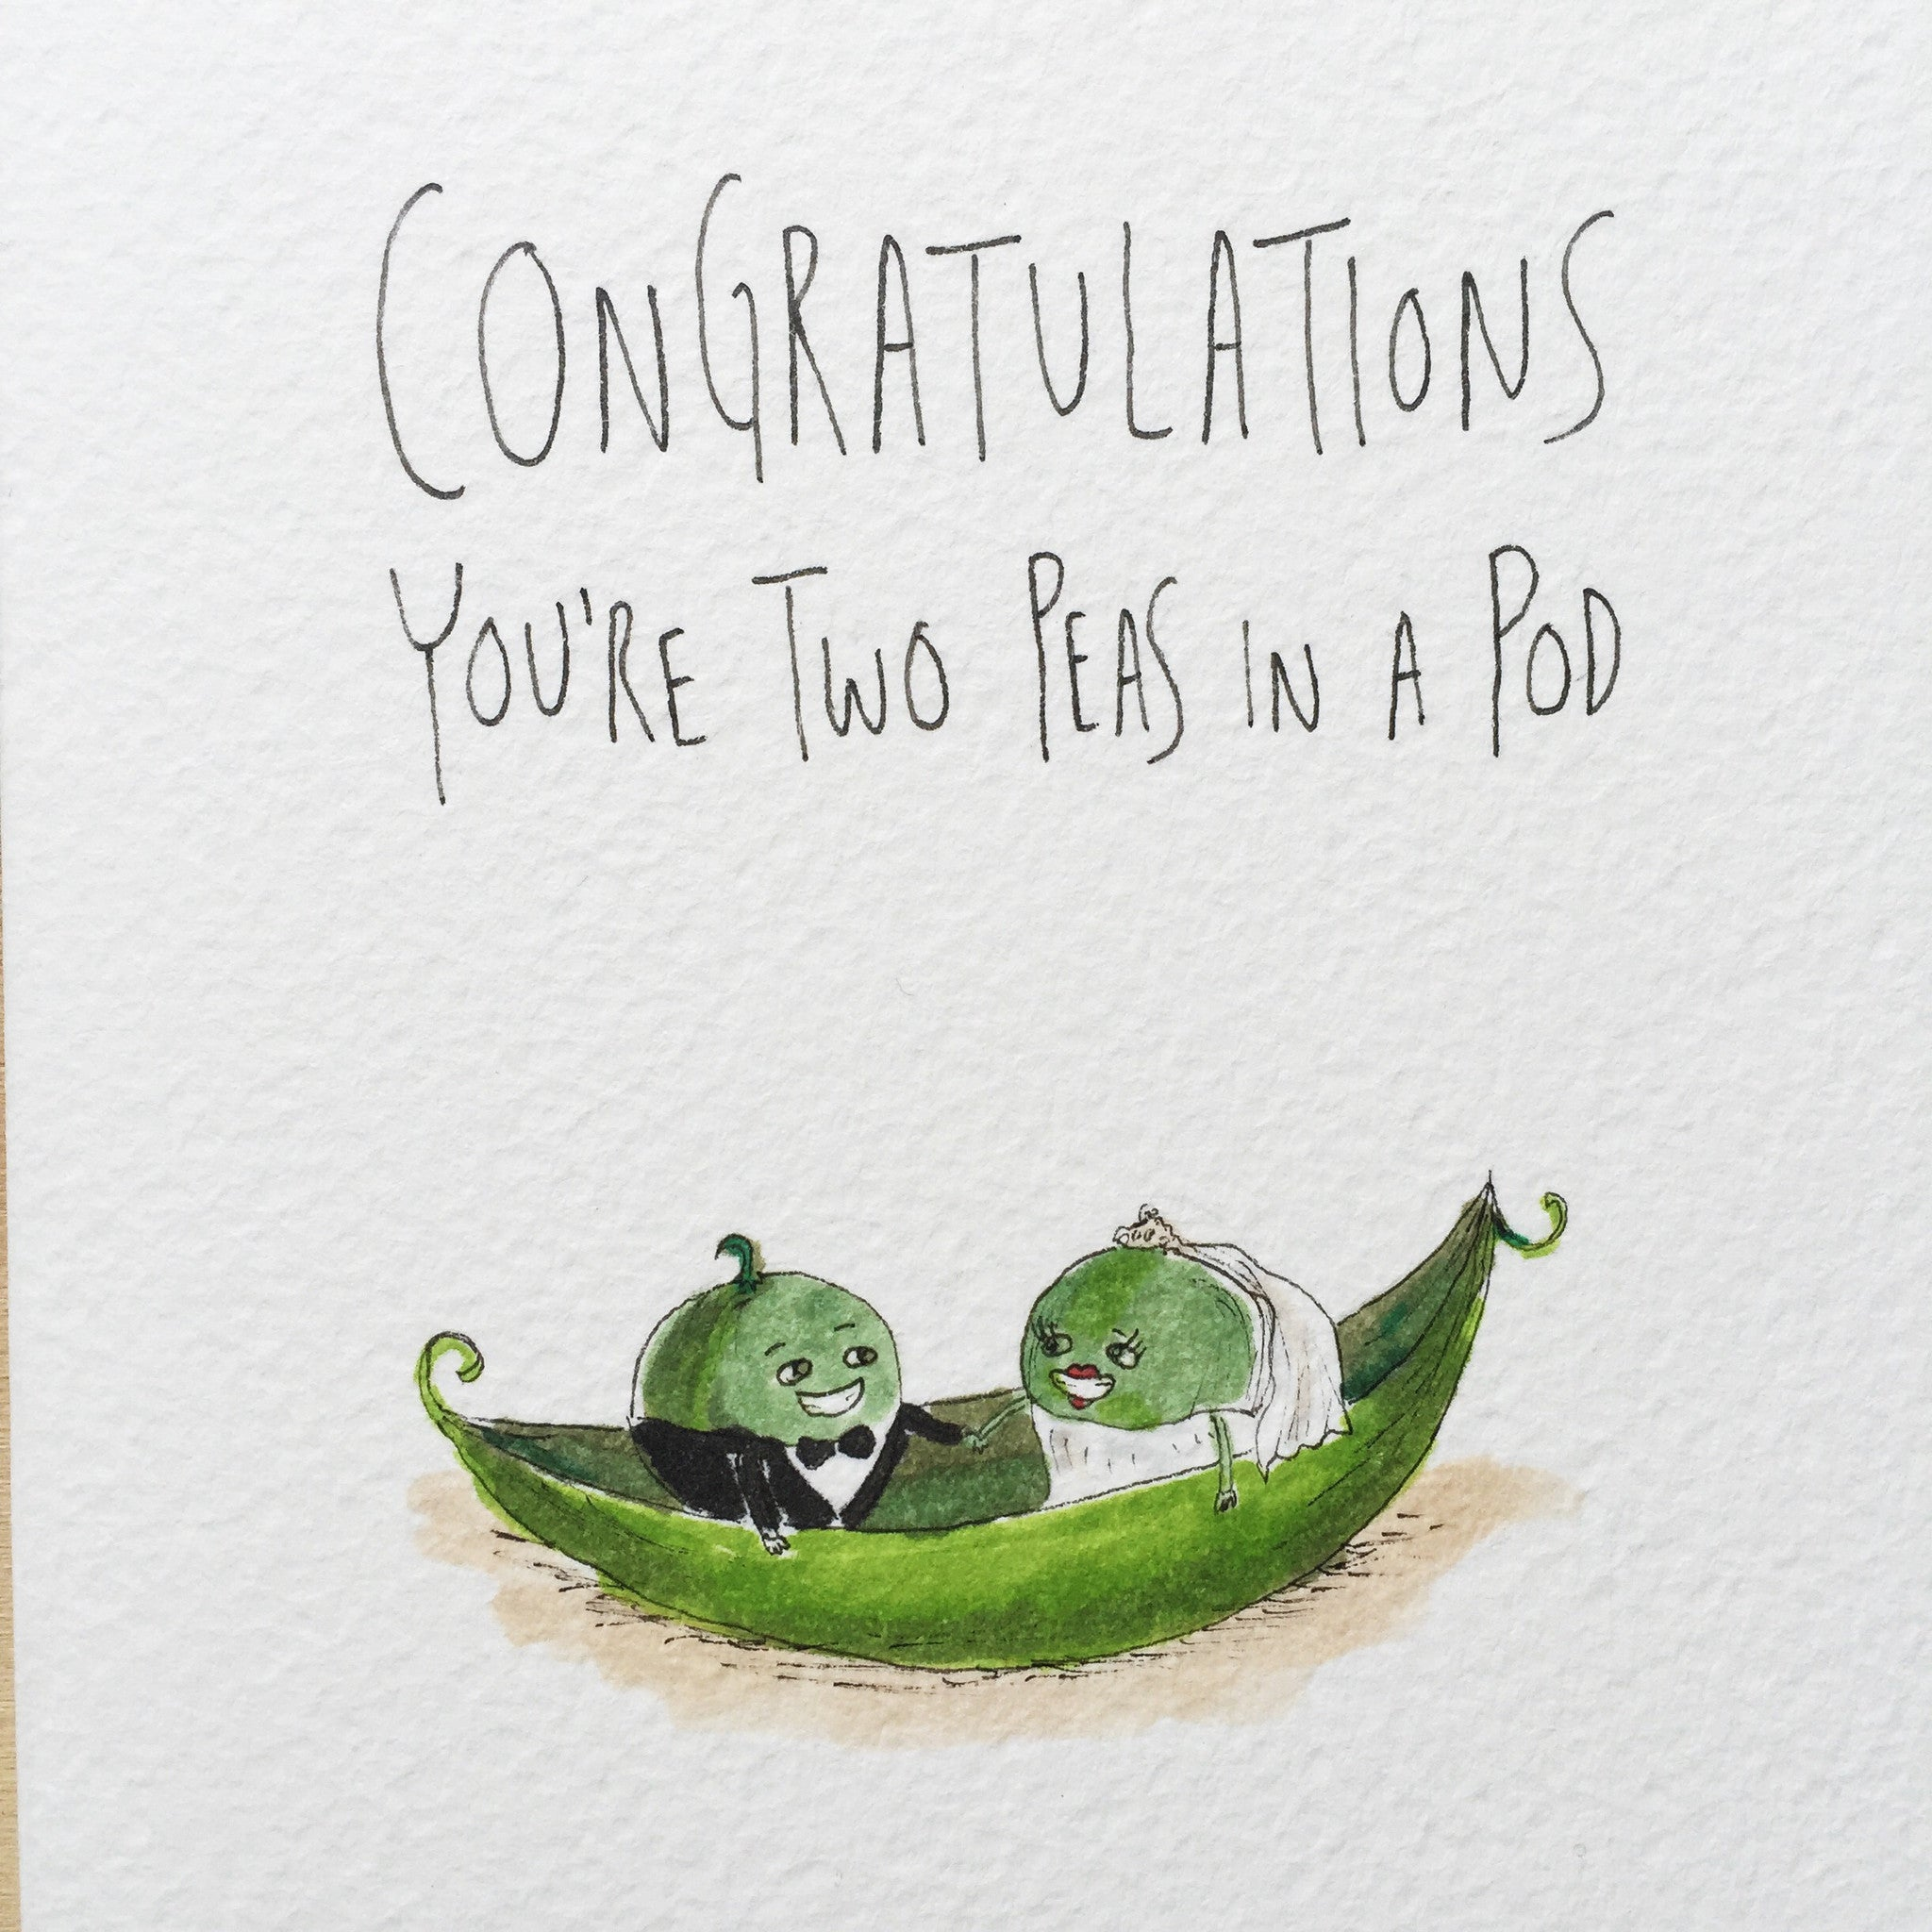 Congratulations You're Two Peas In a Pod - Well Drawn